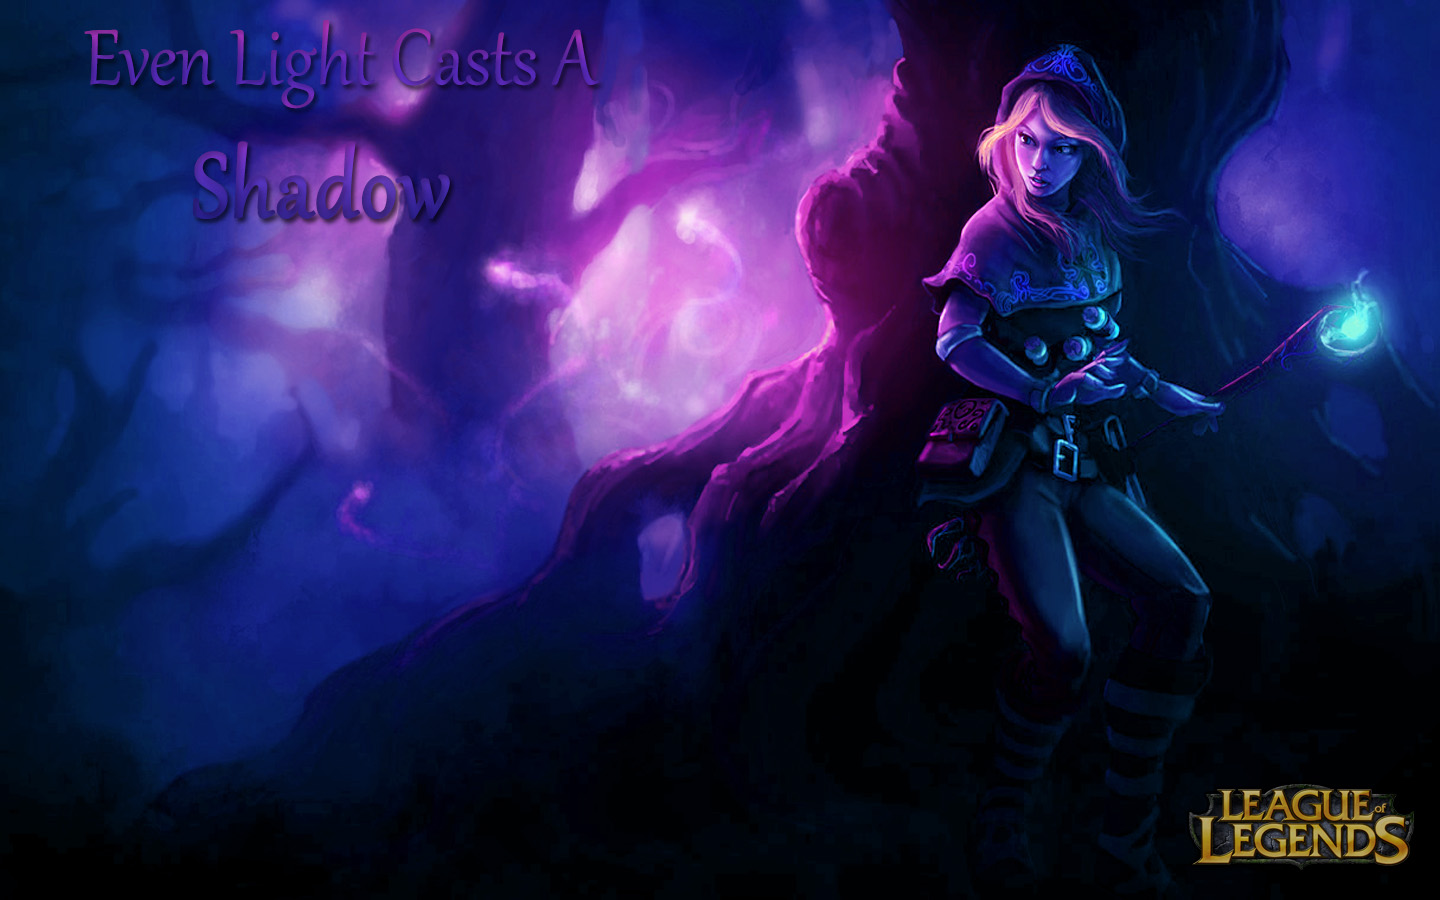 League Of Legends Spellthief Lux Wallpaper By Atluss On Deviantart